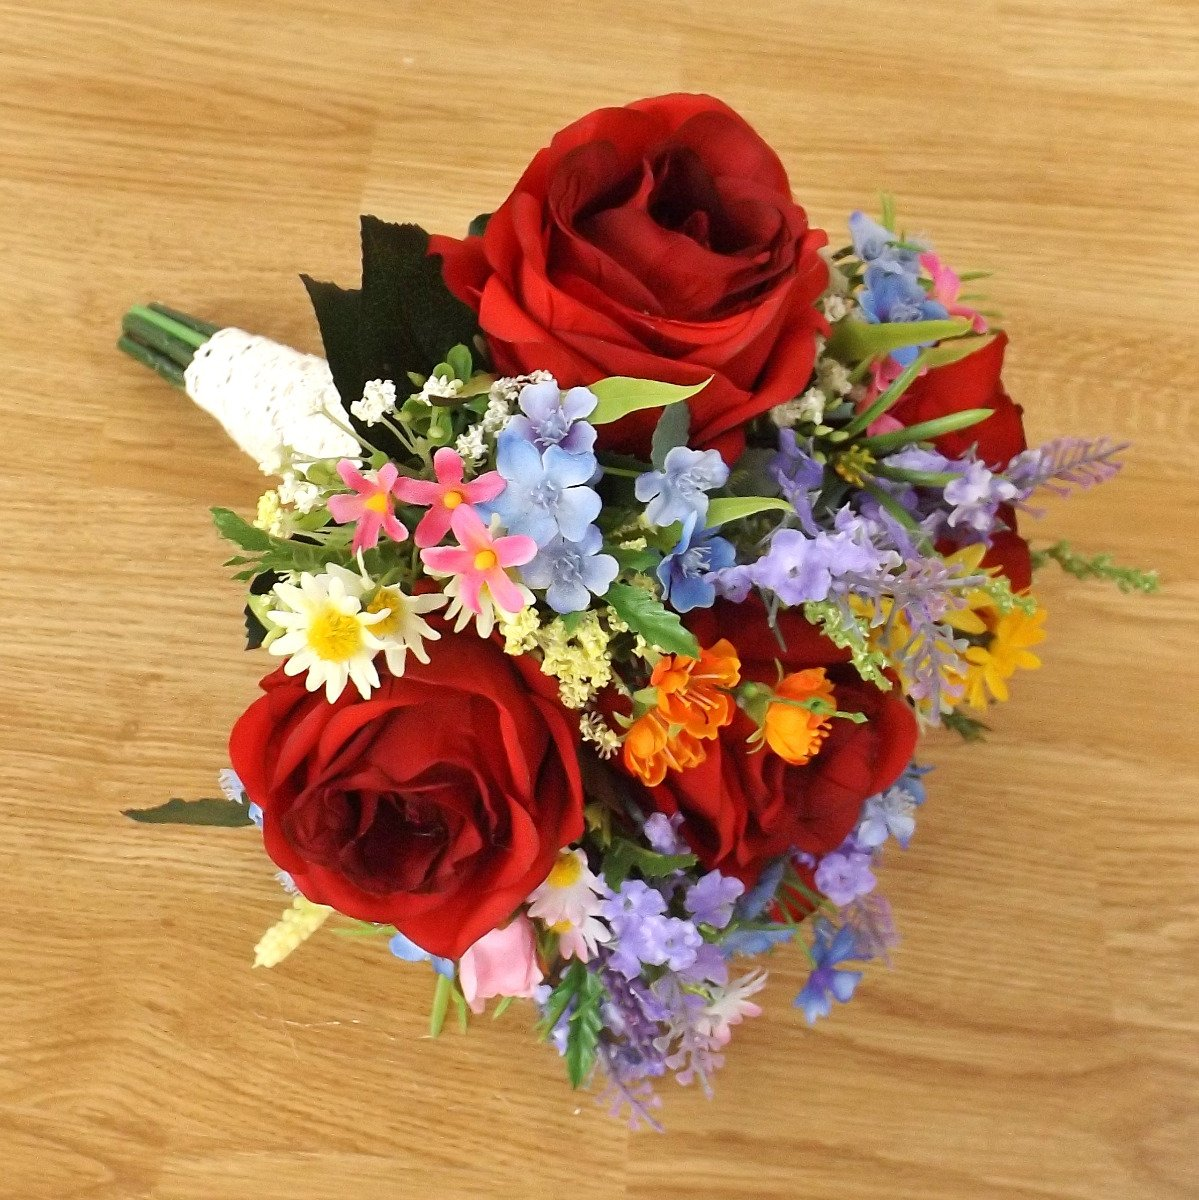 A silk red rose and wildflower brides bouquet